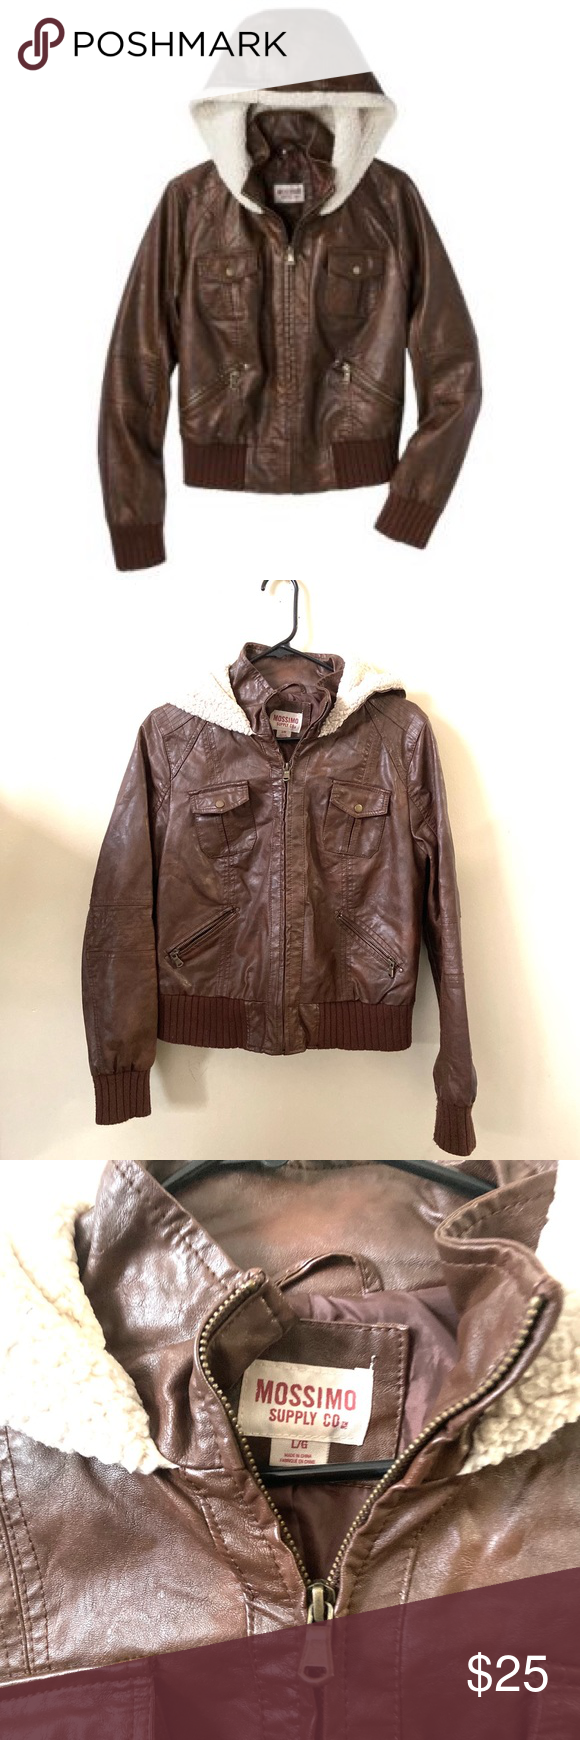 MOSSIMO SUPPLY CO Faux Leather Brown Hood Jacket Hooded